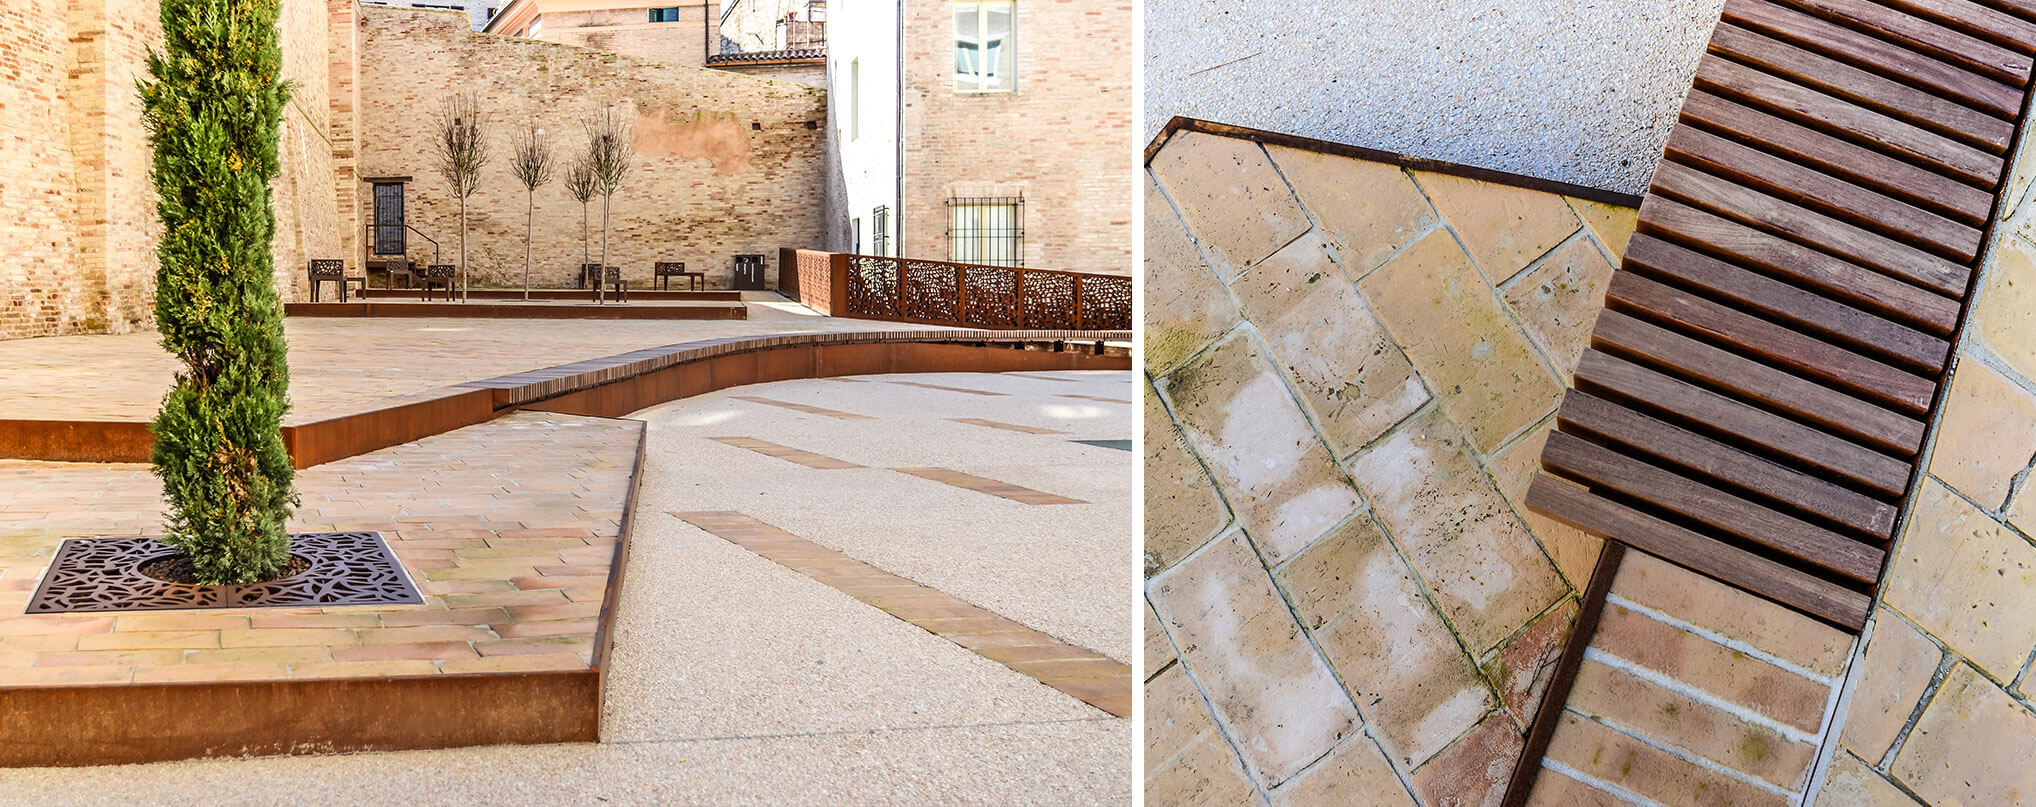 corten borders highlight the play on altimetry of the courtyard